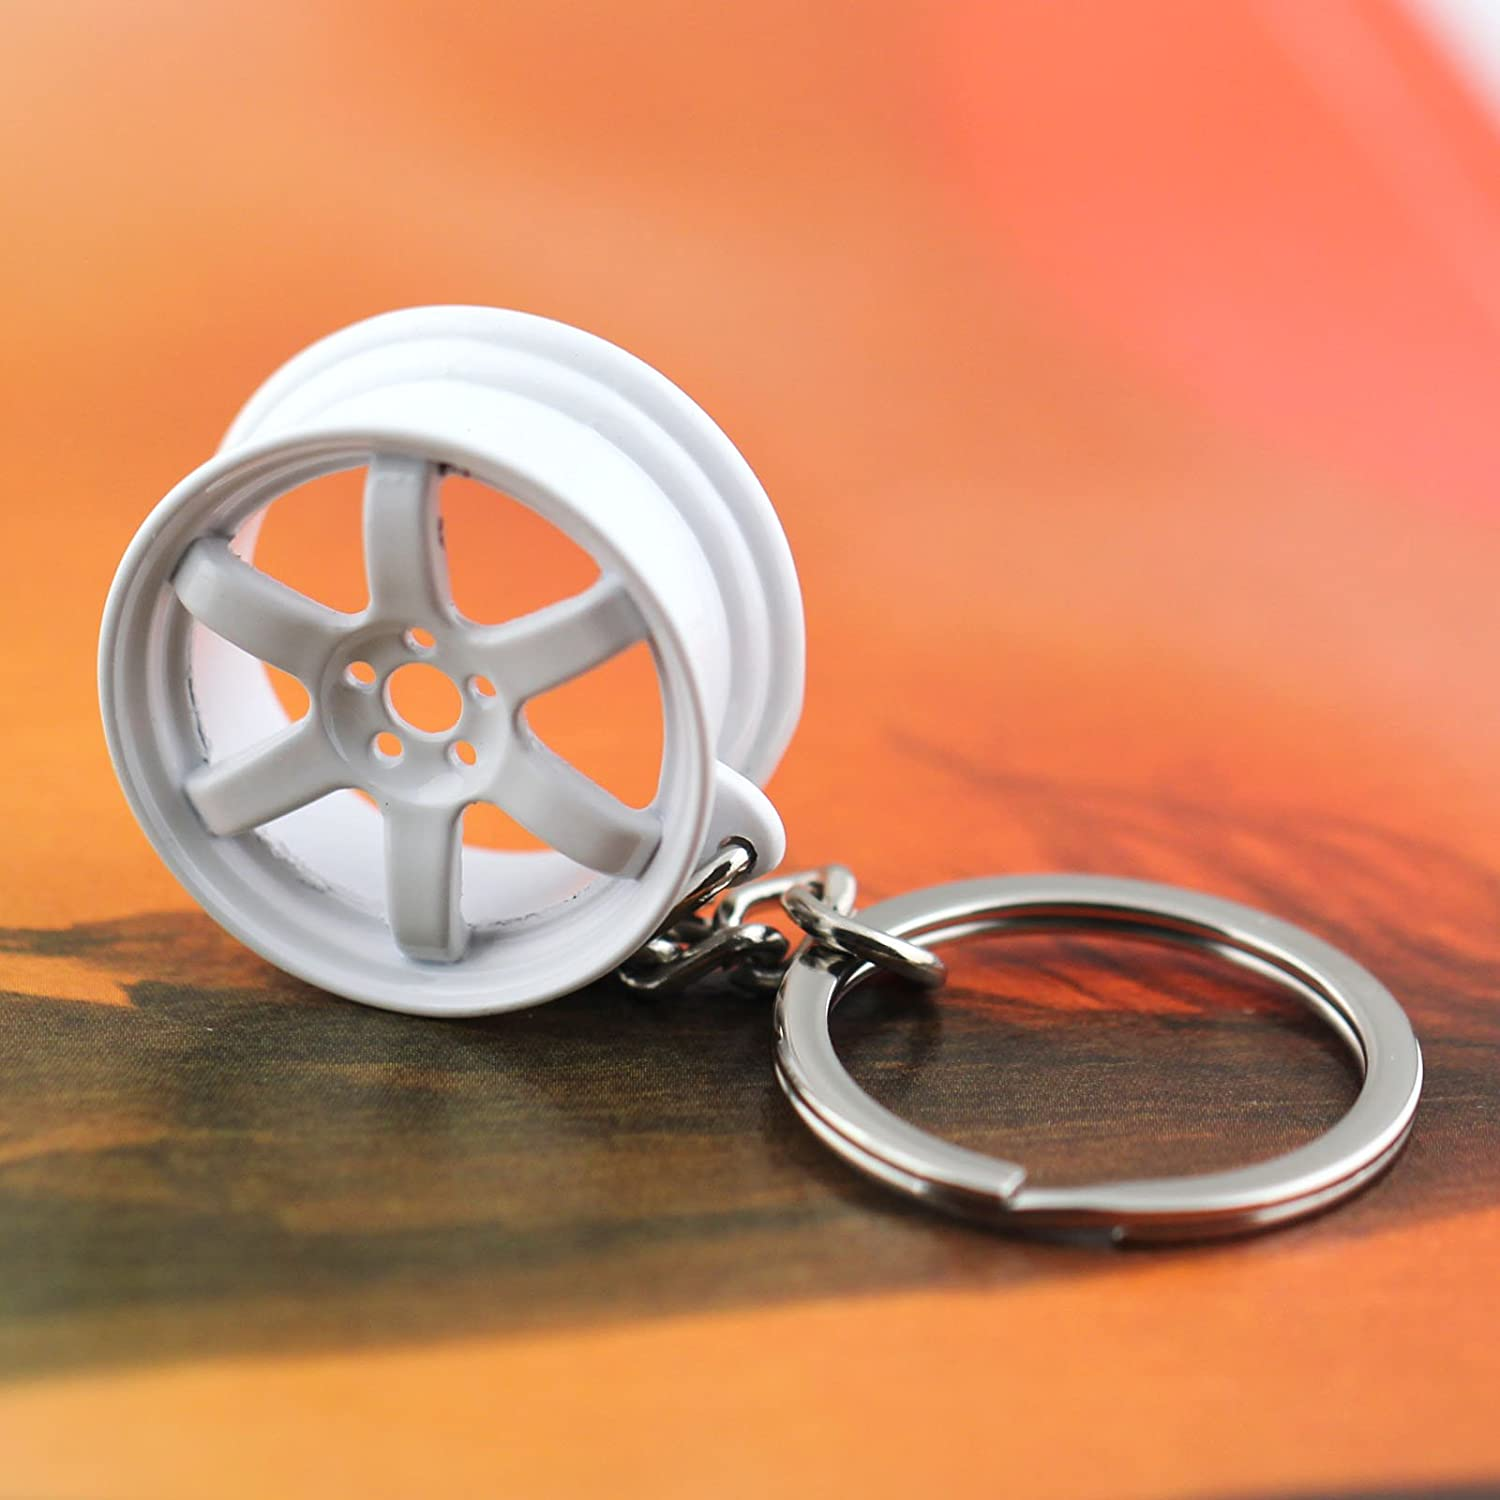 MB Black with Green maycom Creative Hot Auto Part Model Wheel Rim Tyre Keychain Keyring Key Chain Ring Keyfob